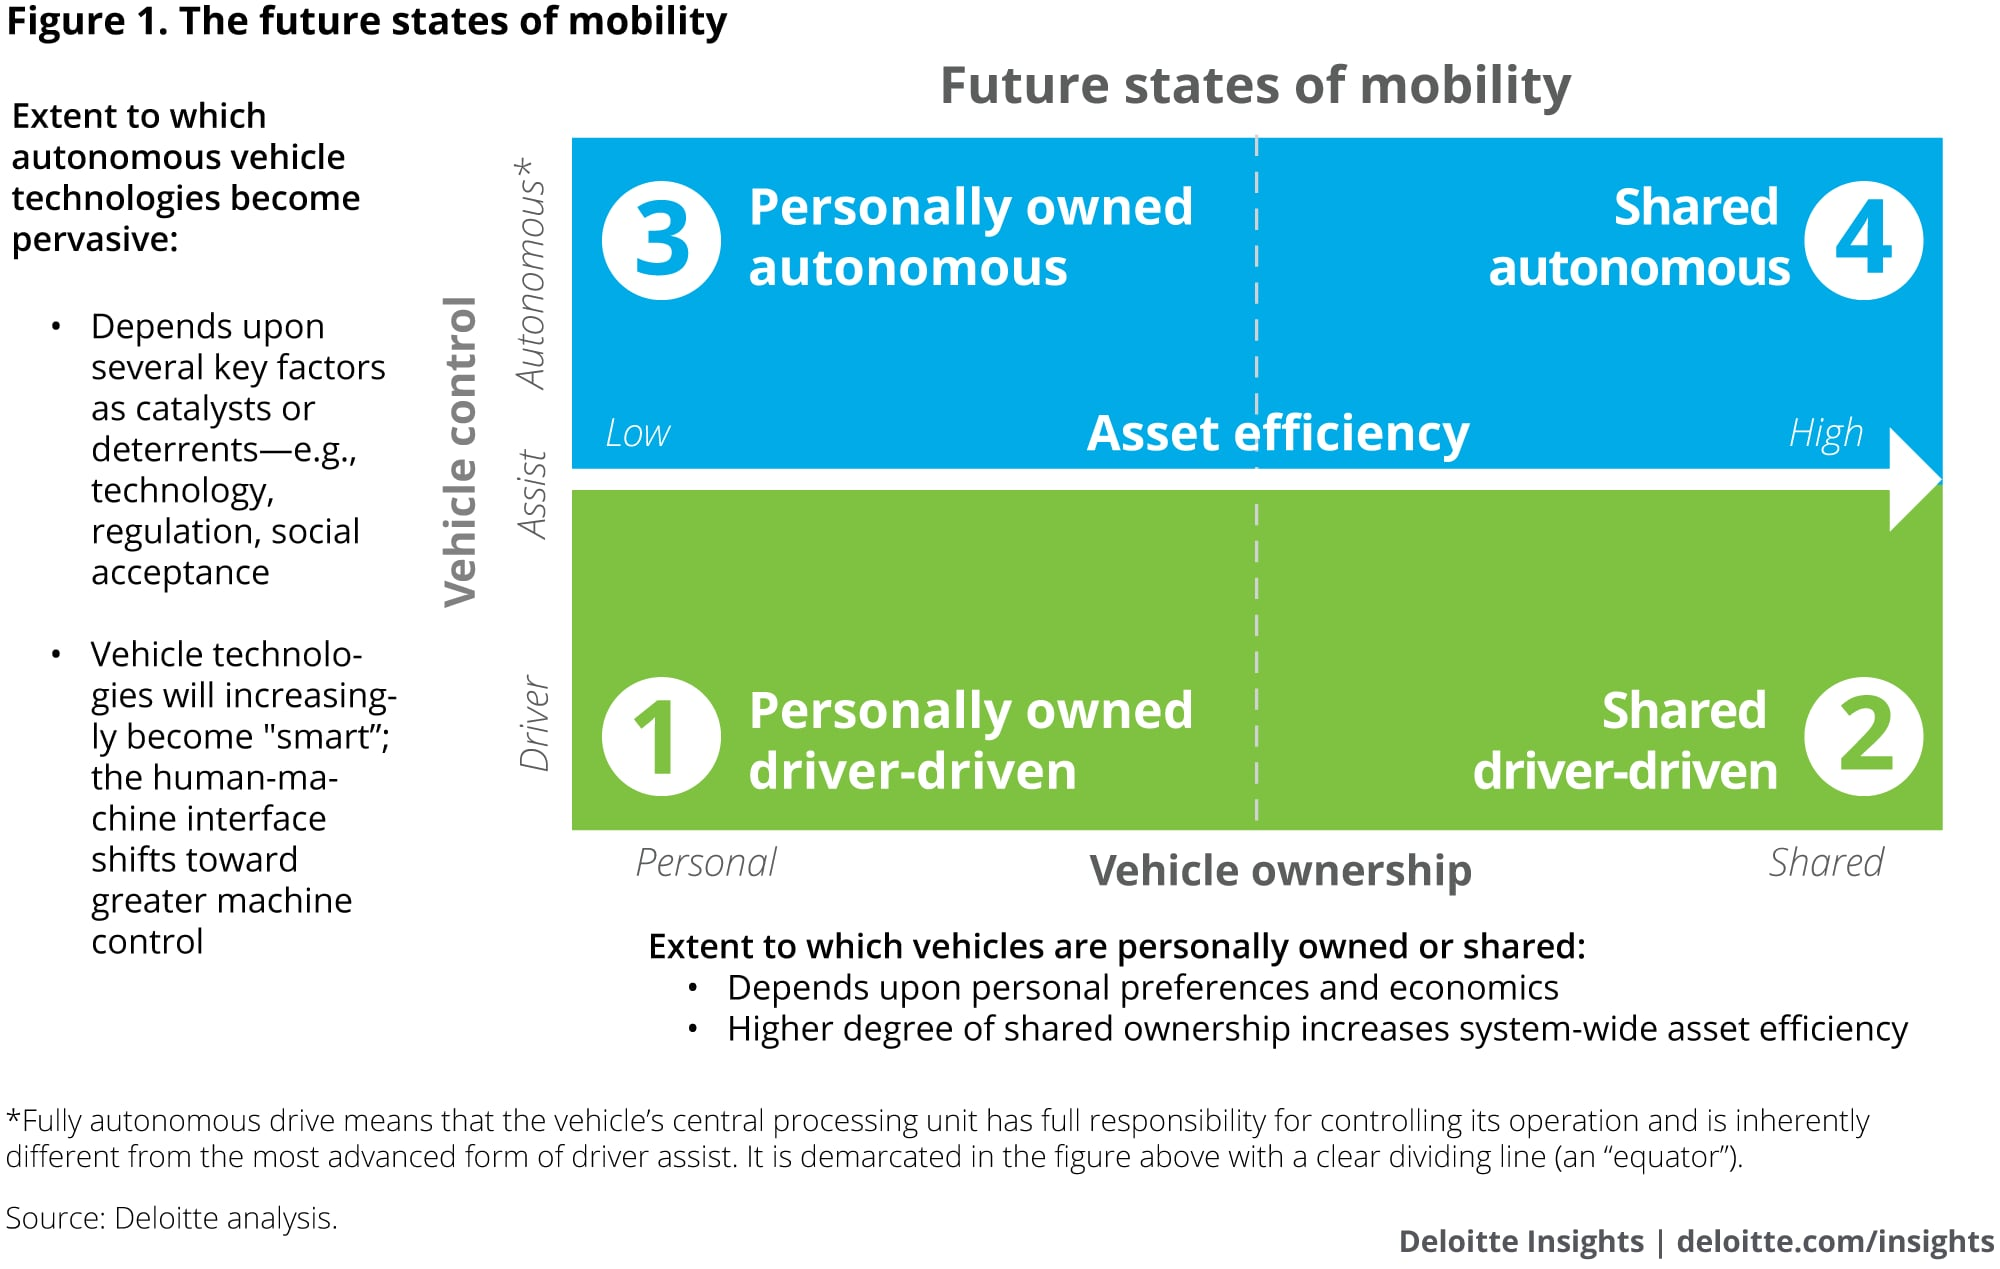 The future states of mobility